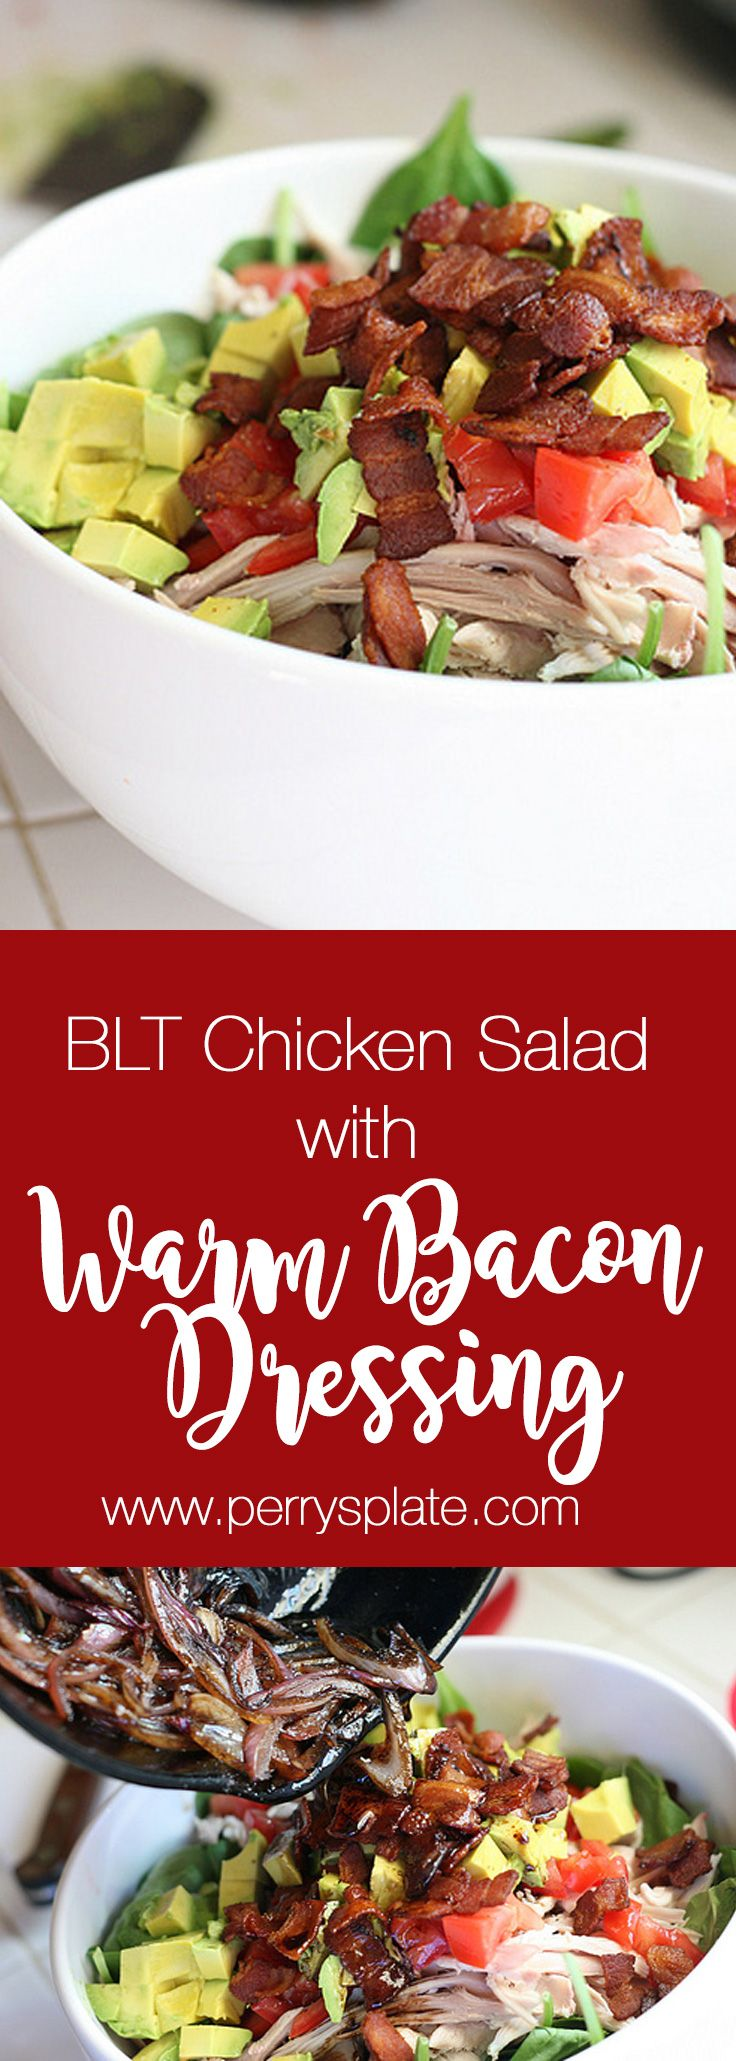 BLT Chicken Salad with Warm Bacon Dressing | paleo recipes | salad recipes | bacon recipes | perry